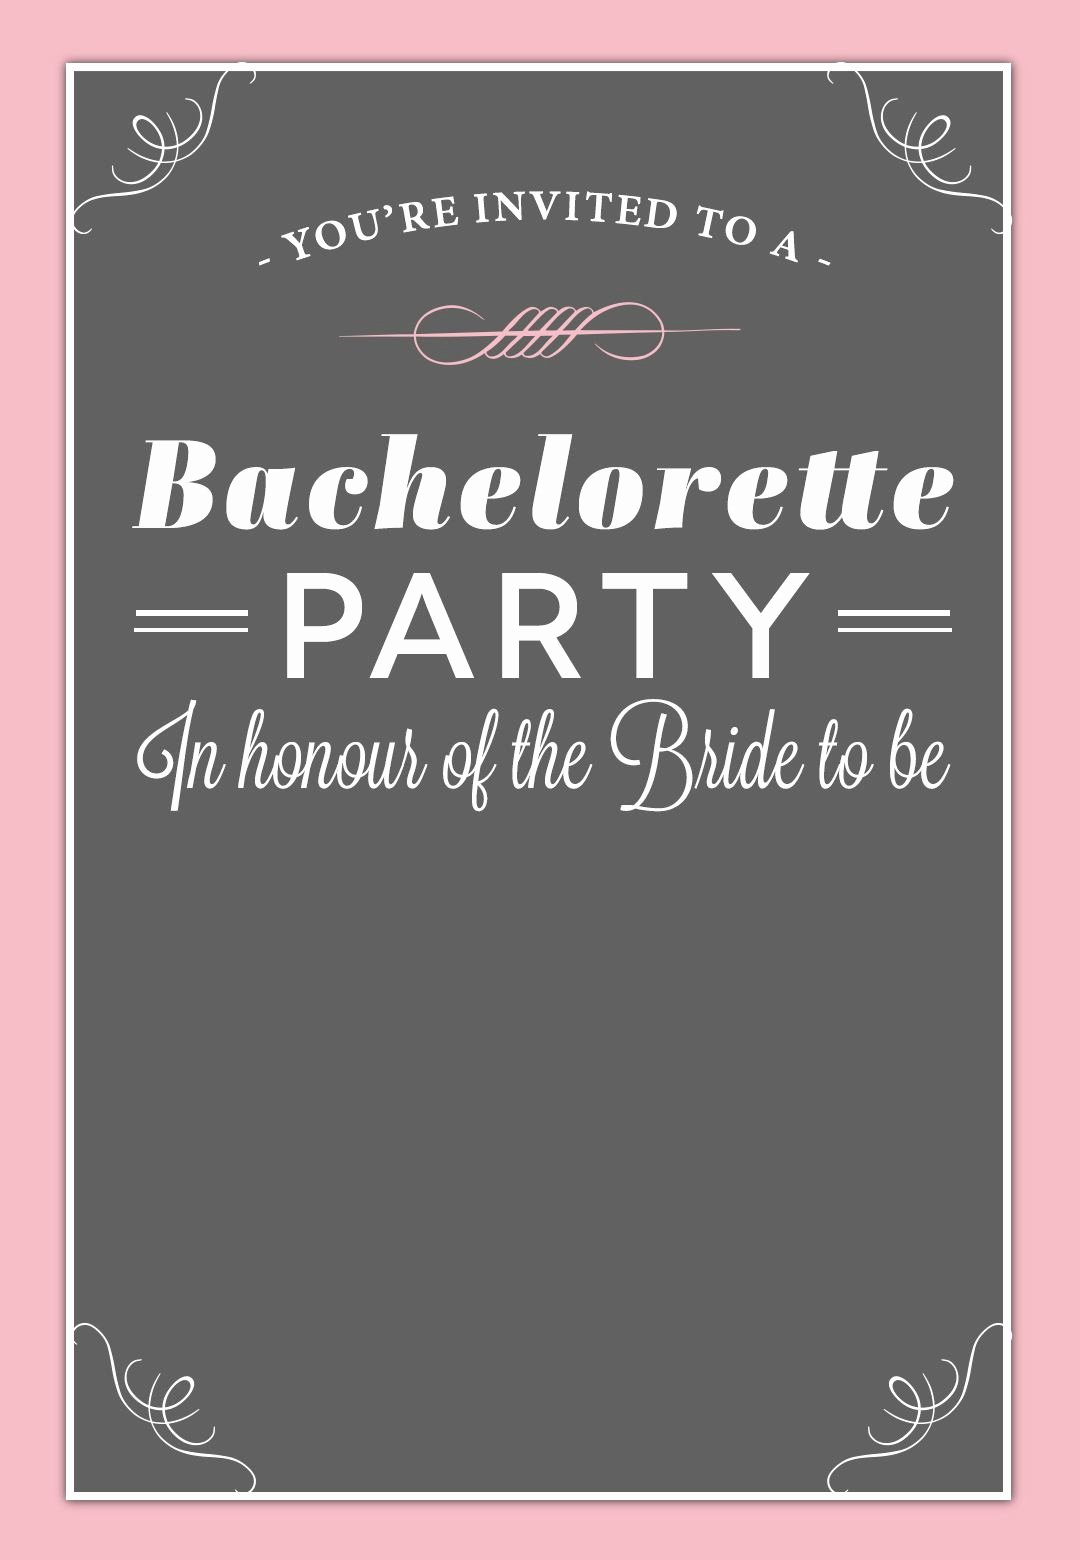 Bachelorette Party Invite Template Free Beautiful Bachelorette Party Invitation Free Printable